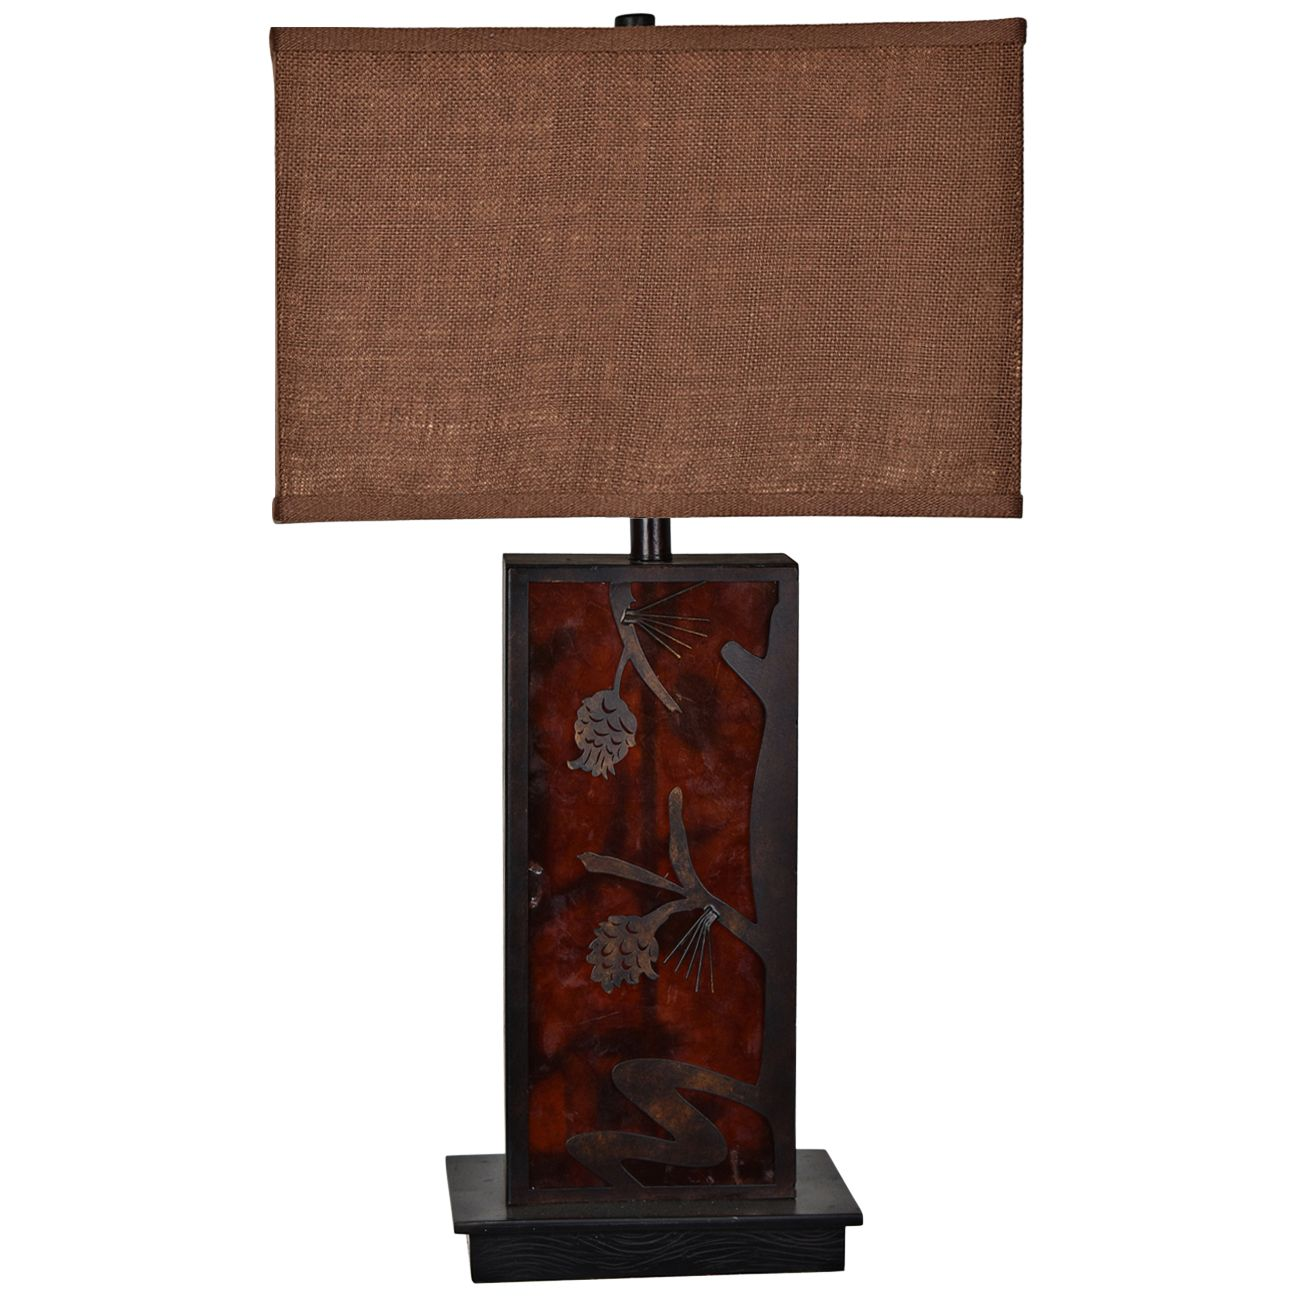 Crestview Collection Rhodes Amber Table Lamp W/ Night Light